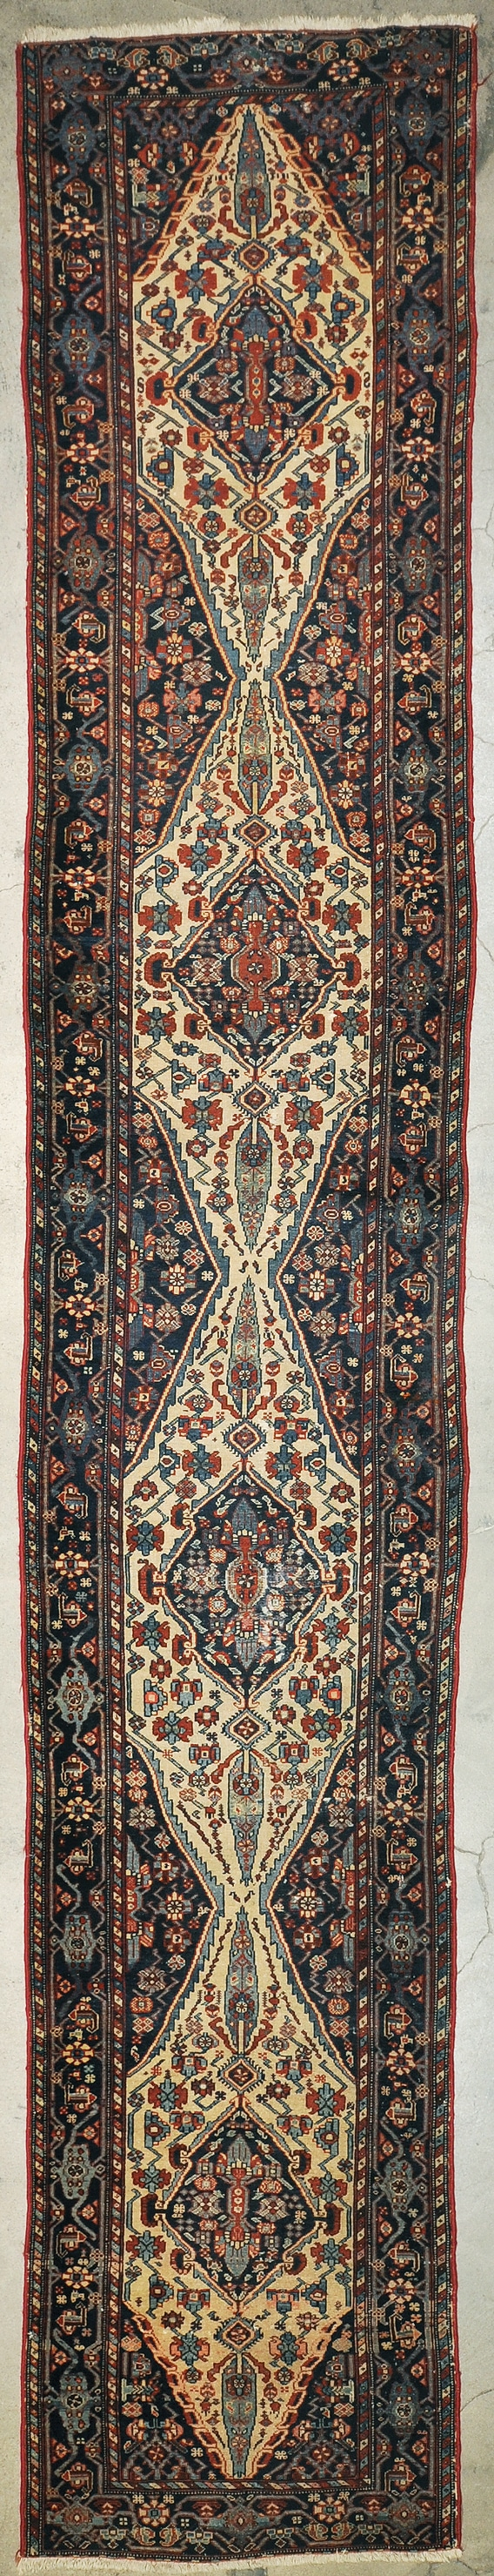 Rare Malayer Runner rugs and more oriental carpet 44006-